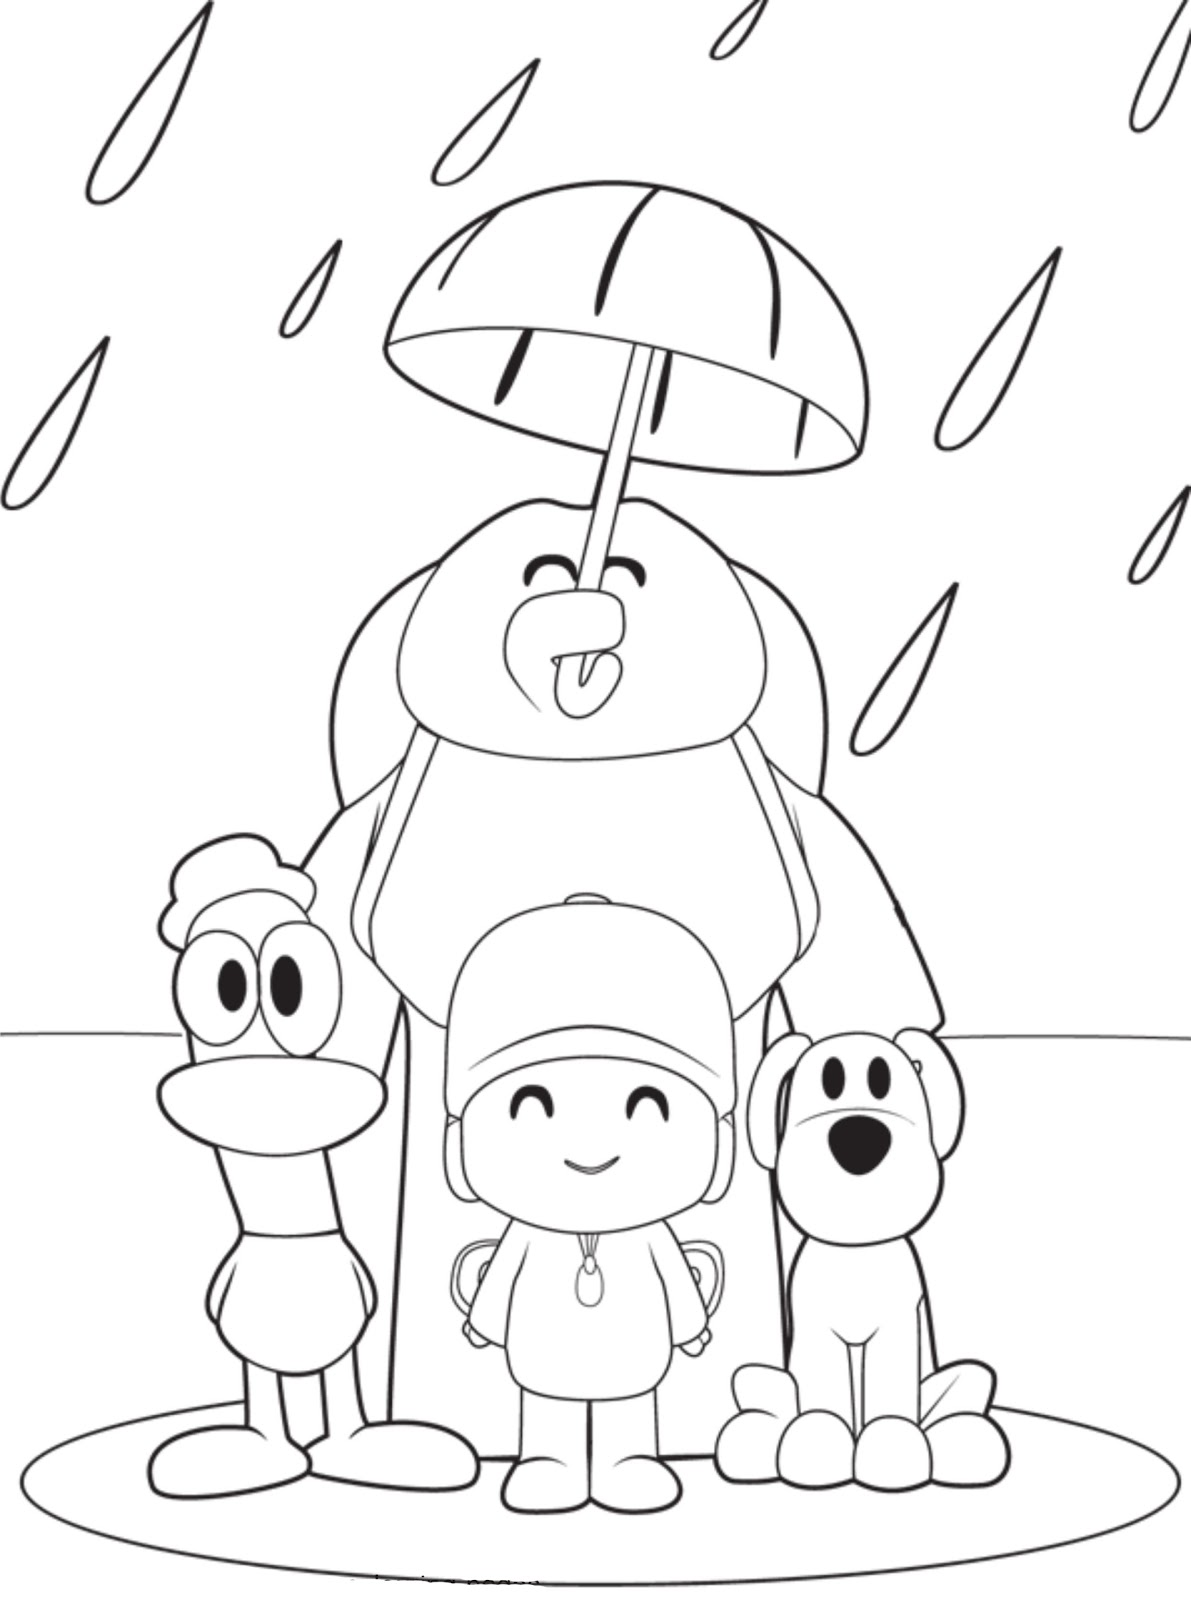 Pocoyo Coloring Pages ~ Free Printable Coloring Pages ...